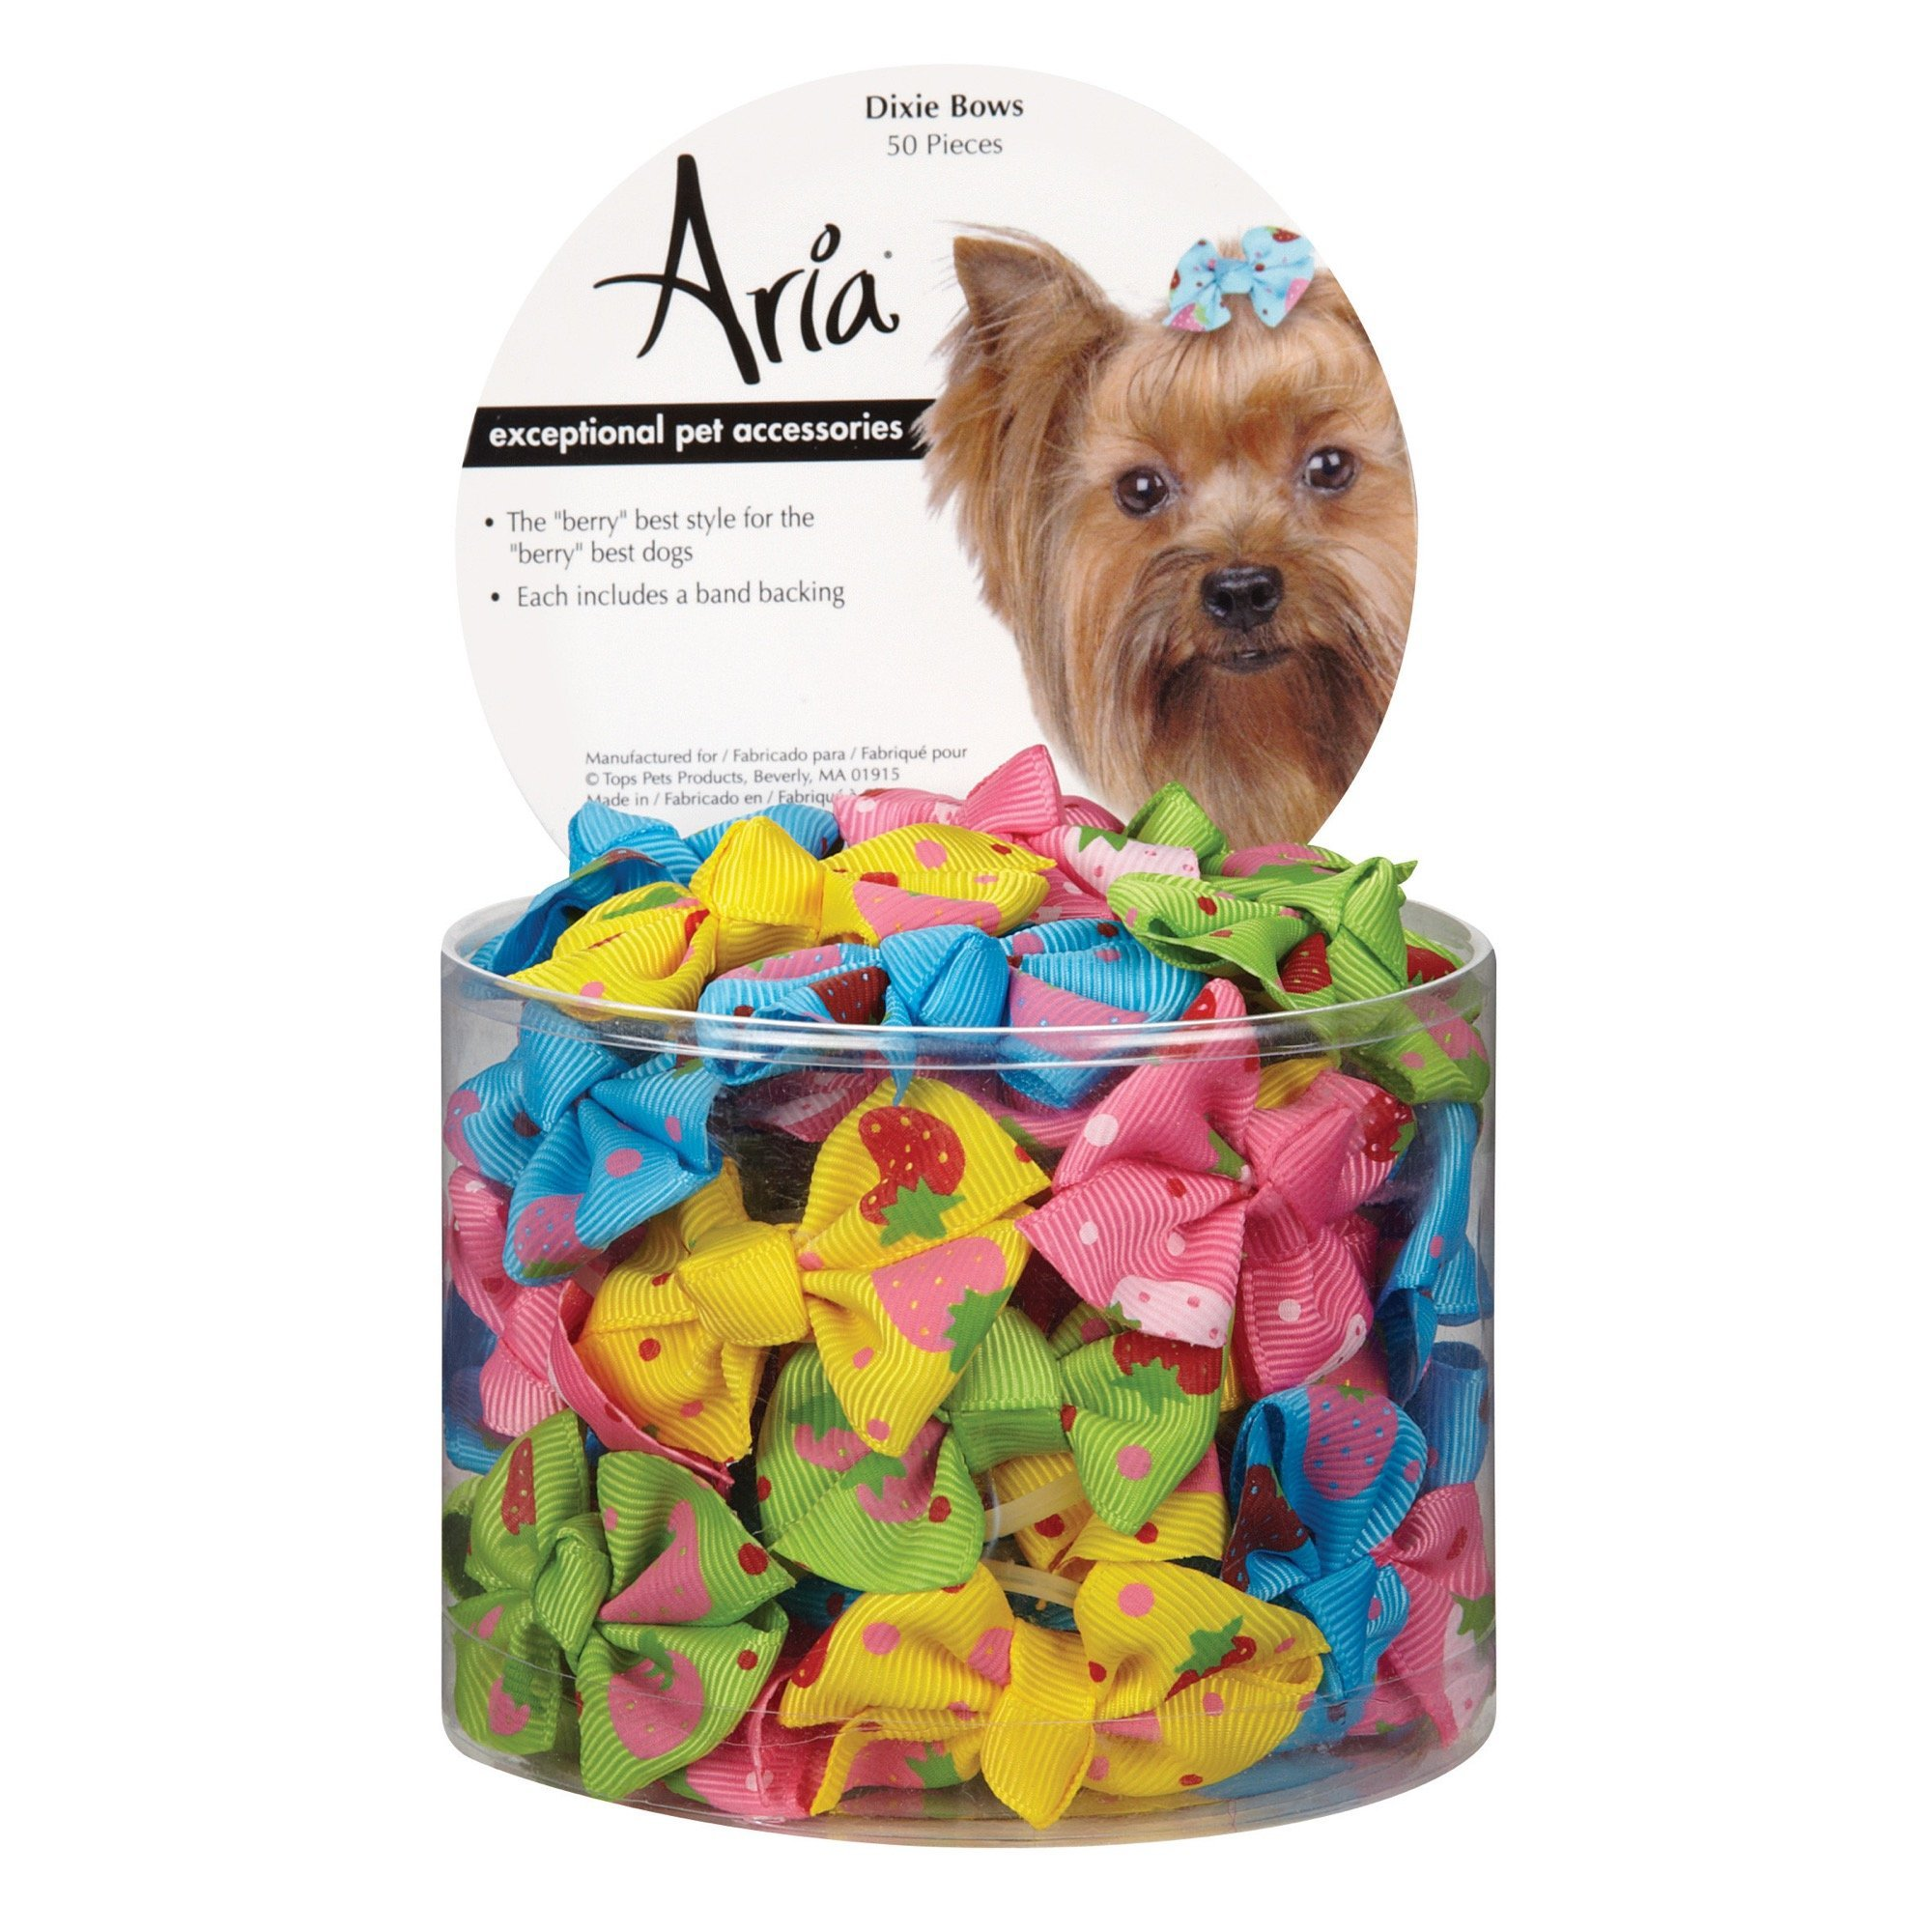 Aria Dixie Bows for Dogs, 50-Piece Canisters by Aria